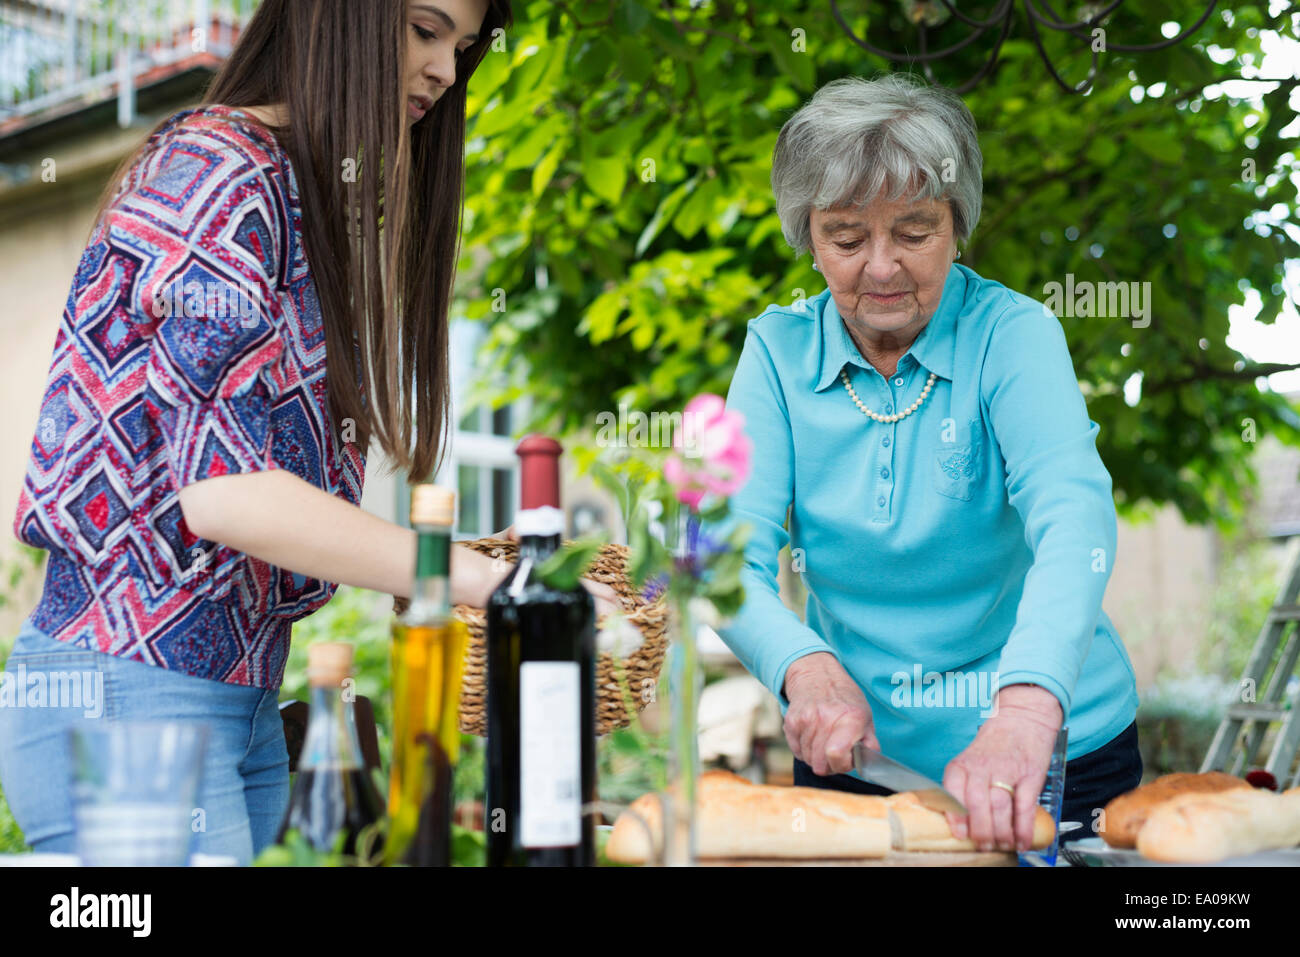 Senior woman cutting bread - Stock Image